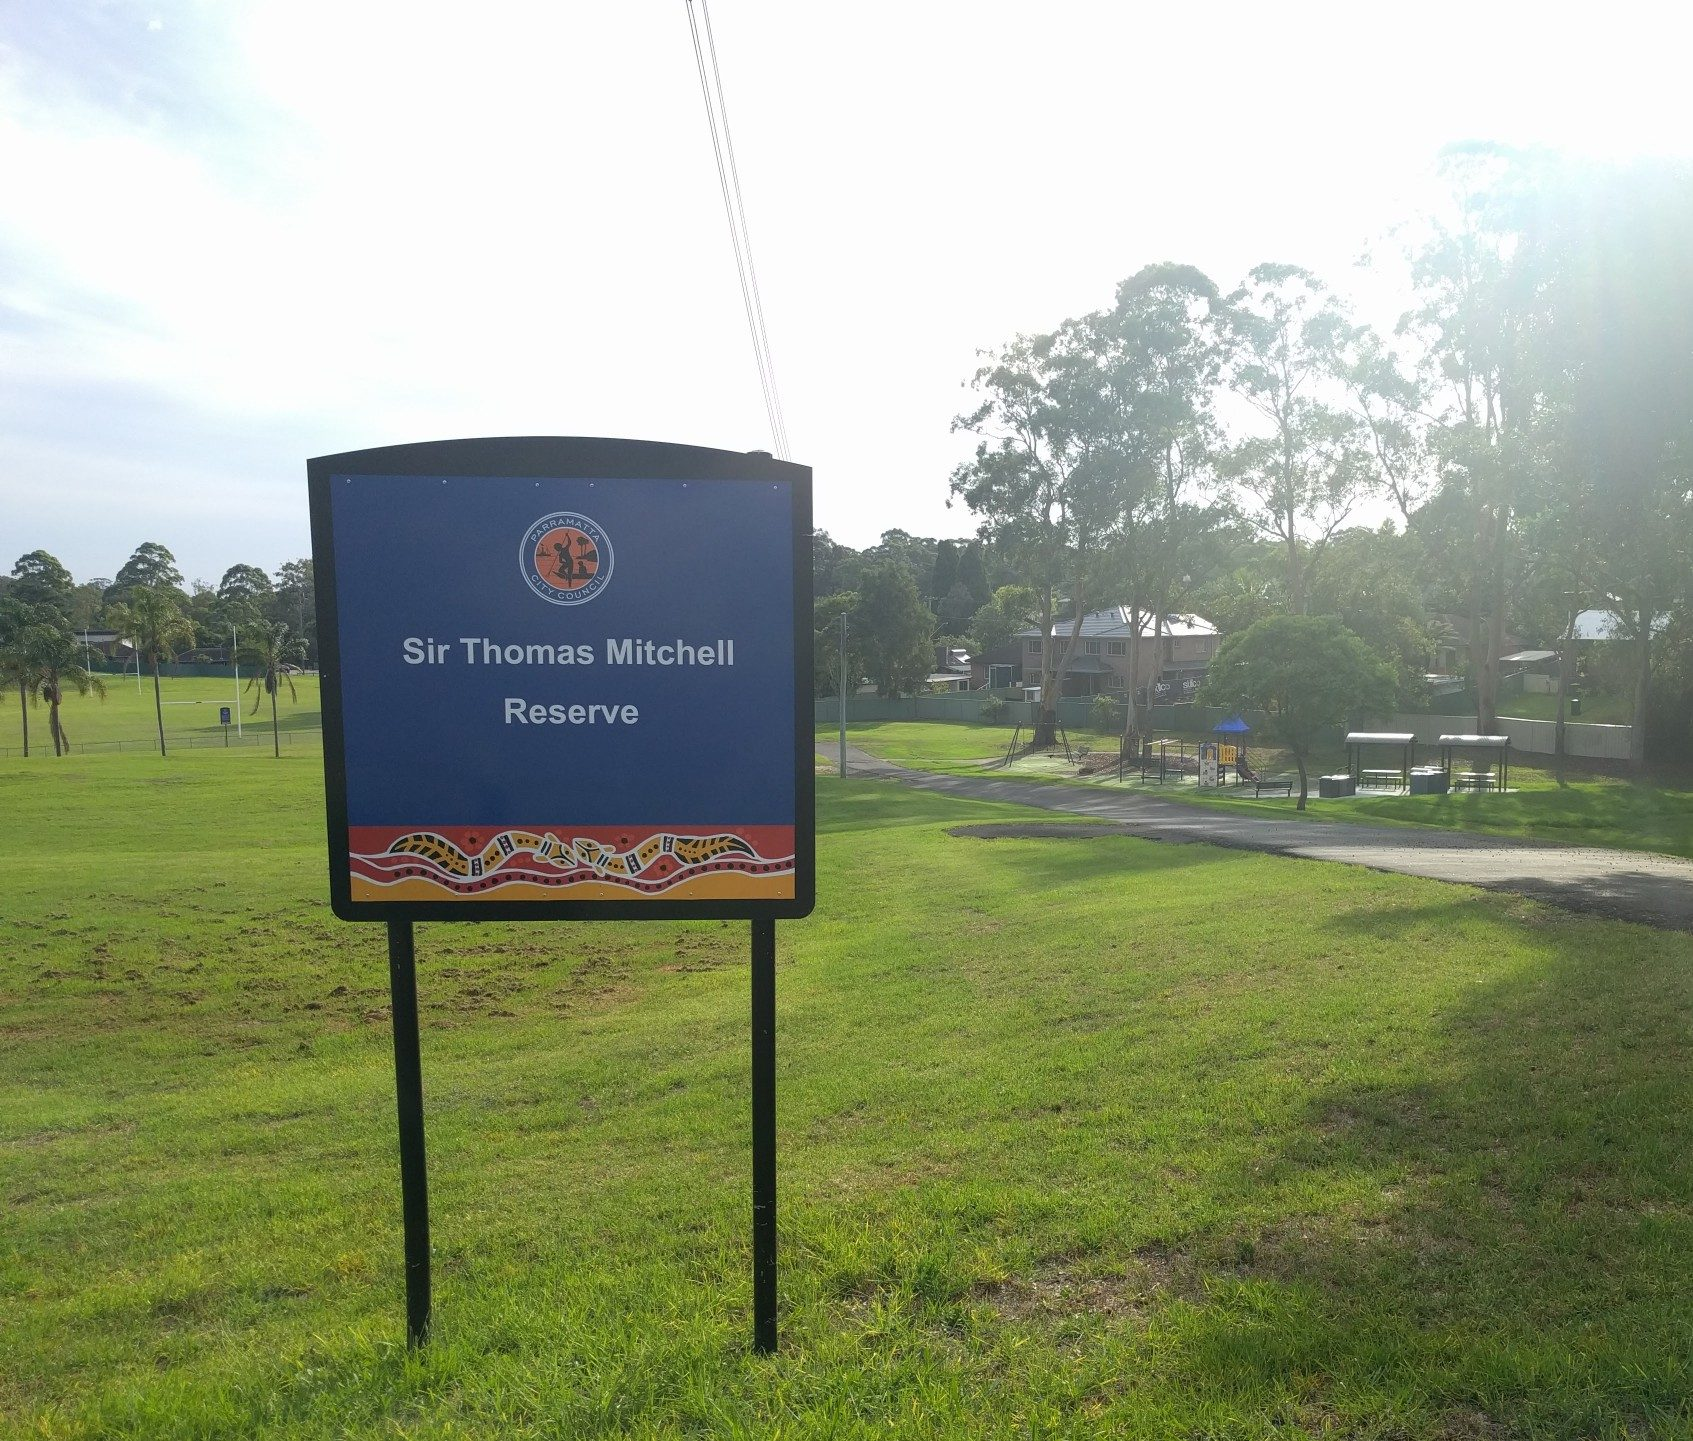 Sir Thomas Mitchell Reserve